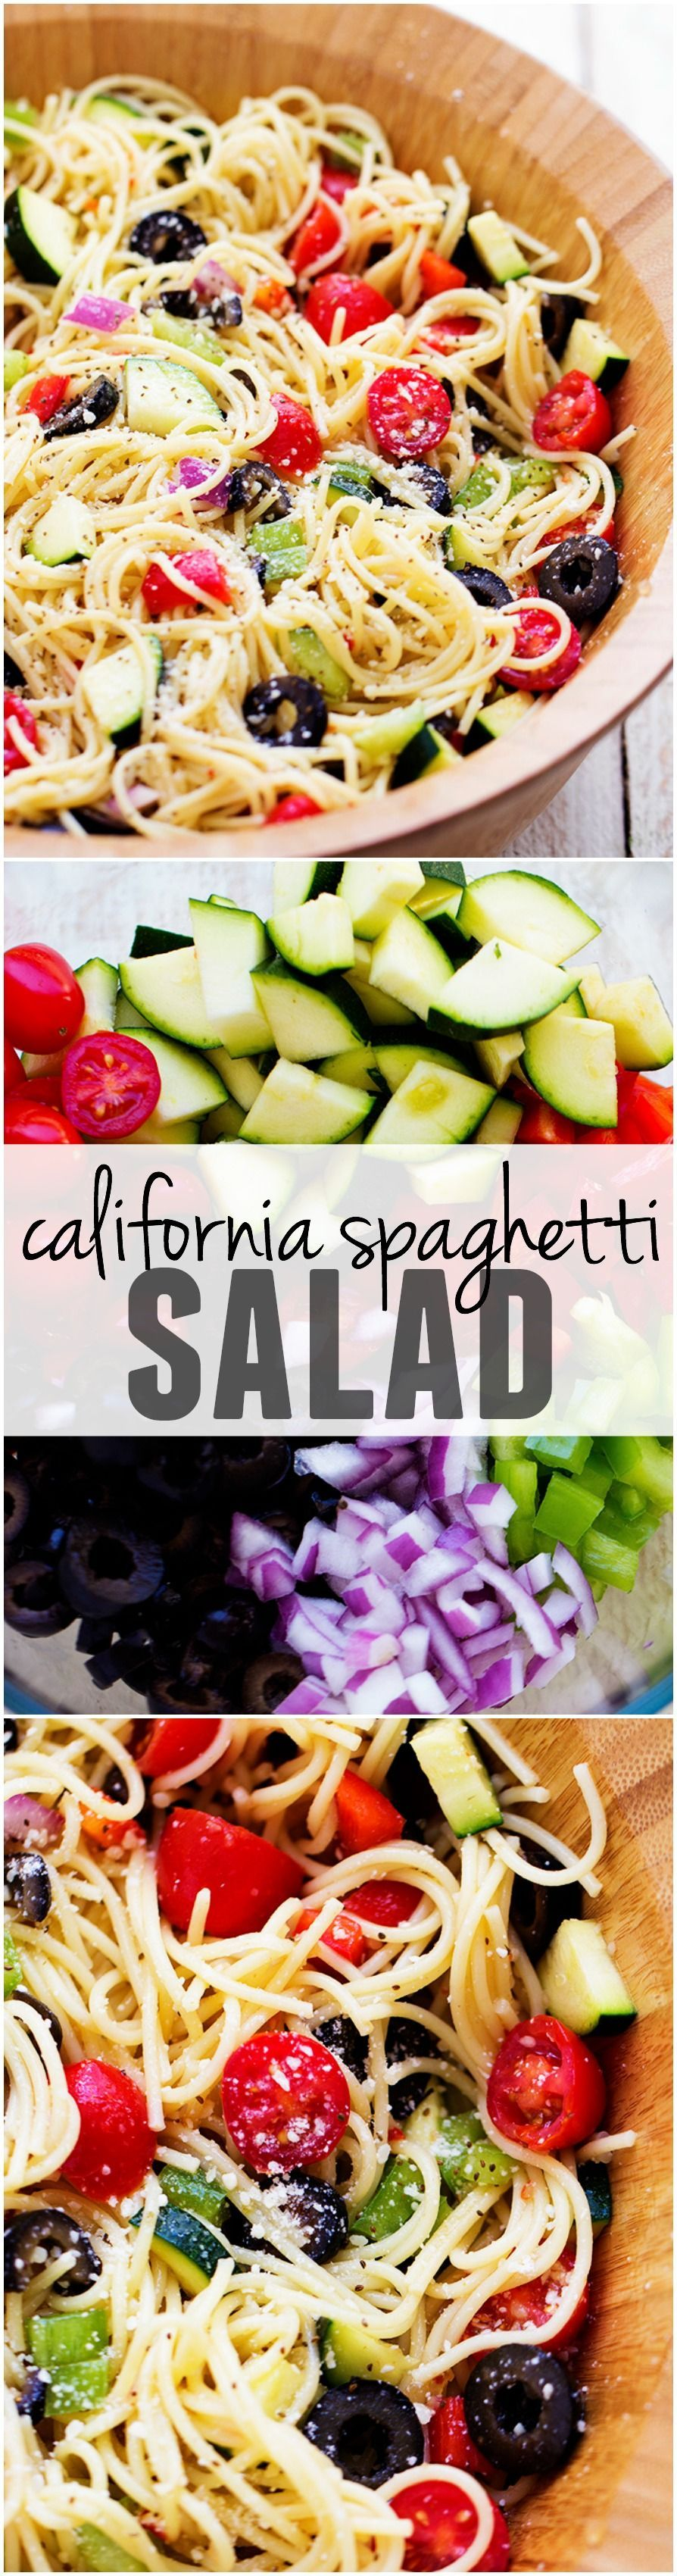 California Spaghetti Salad is full of delicious summer veggies and topped with zesty italian dressing... it will be the HUGE HIT of any potluck!